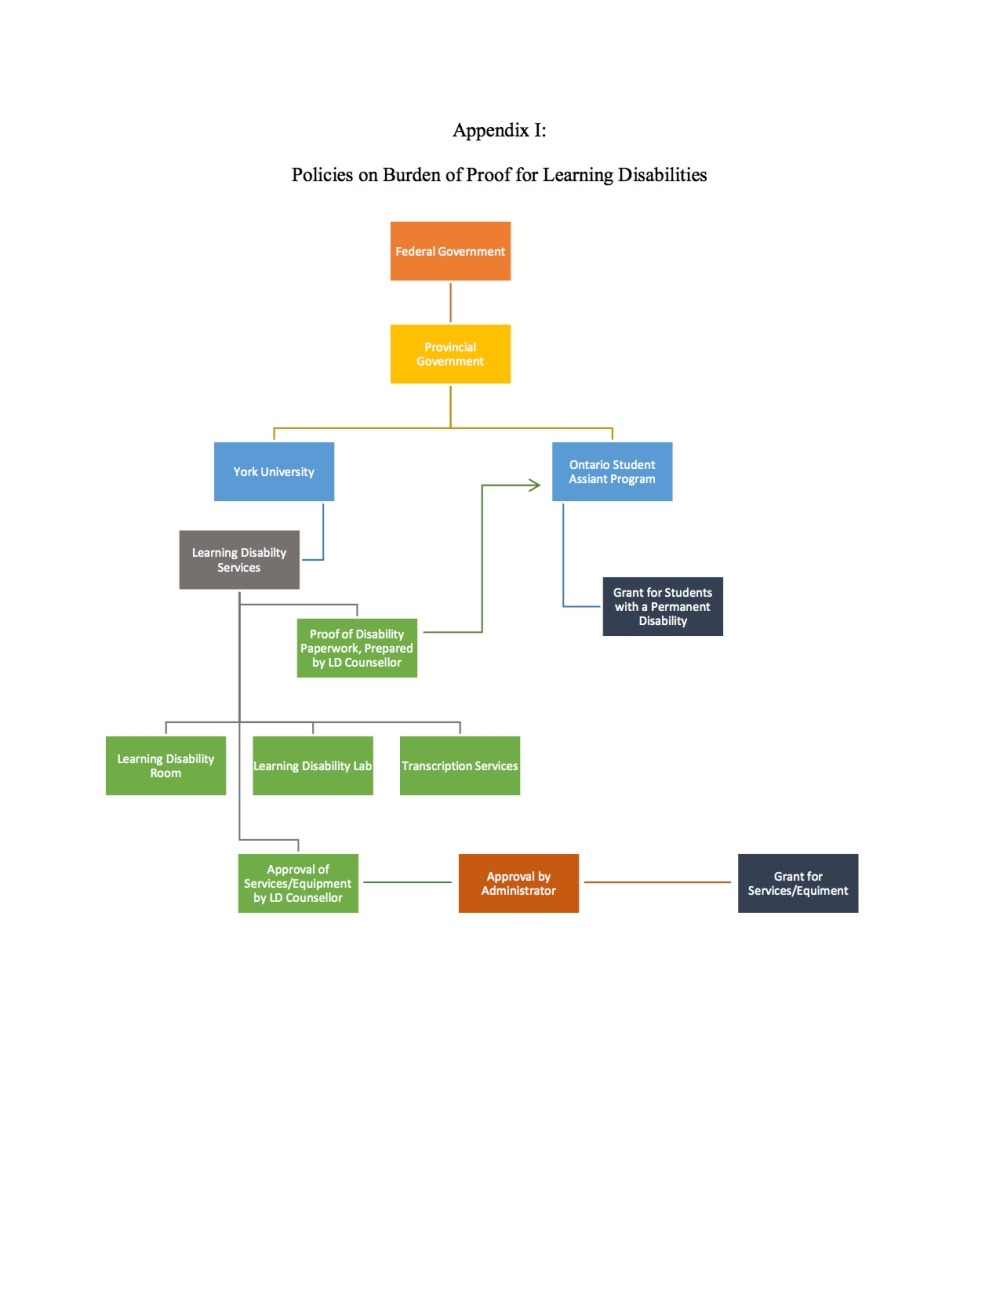 A flow chart that shows how the Federal Government influences universities in the access of accommodations